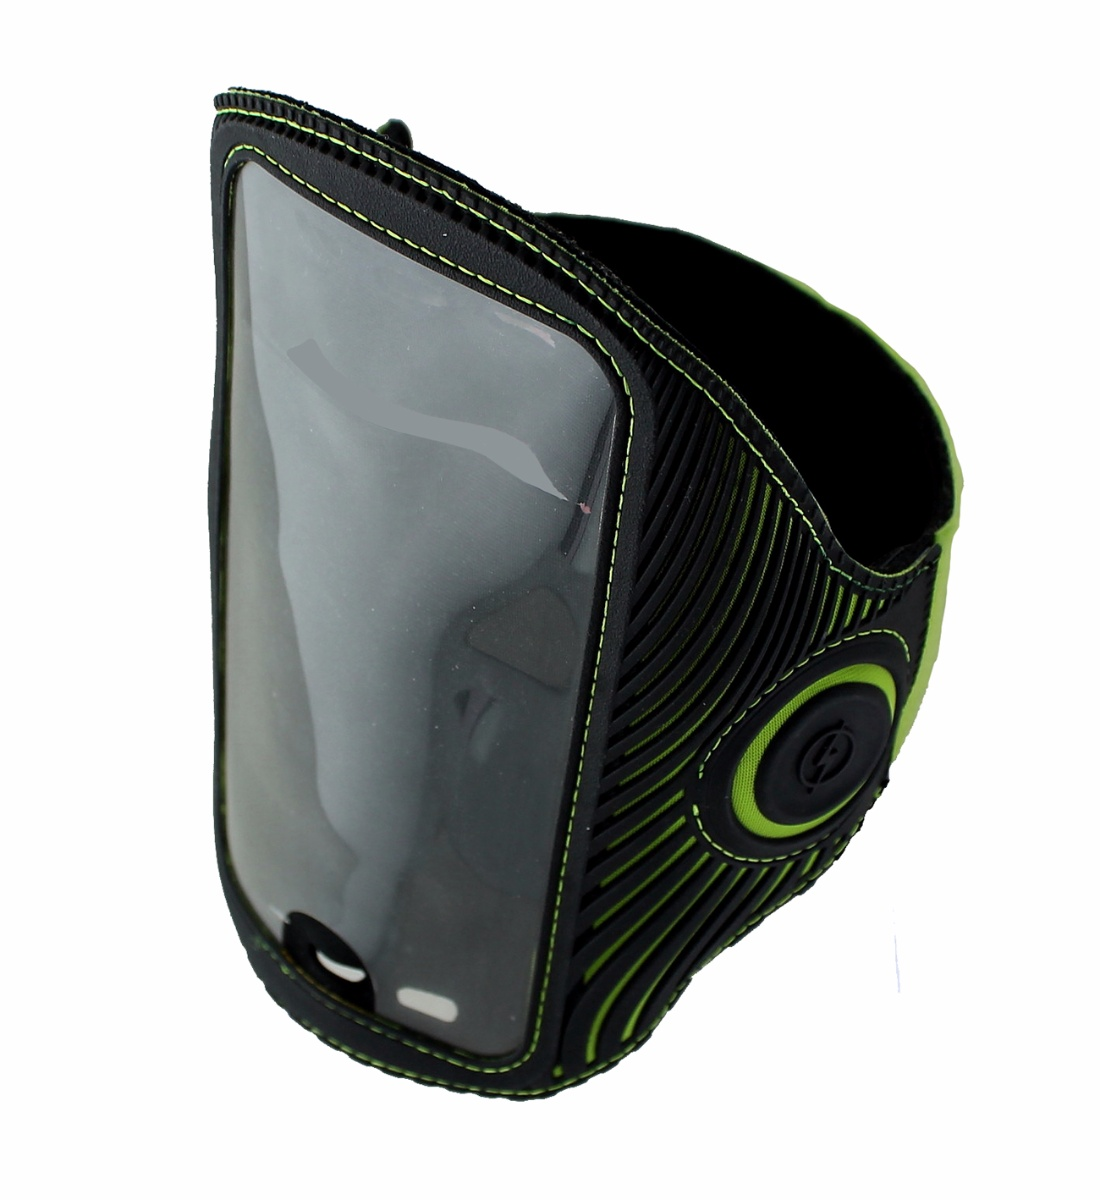 Griffin LightRunner Flashing ArmBand for Phones up to 5.5 inch - Black / Green